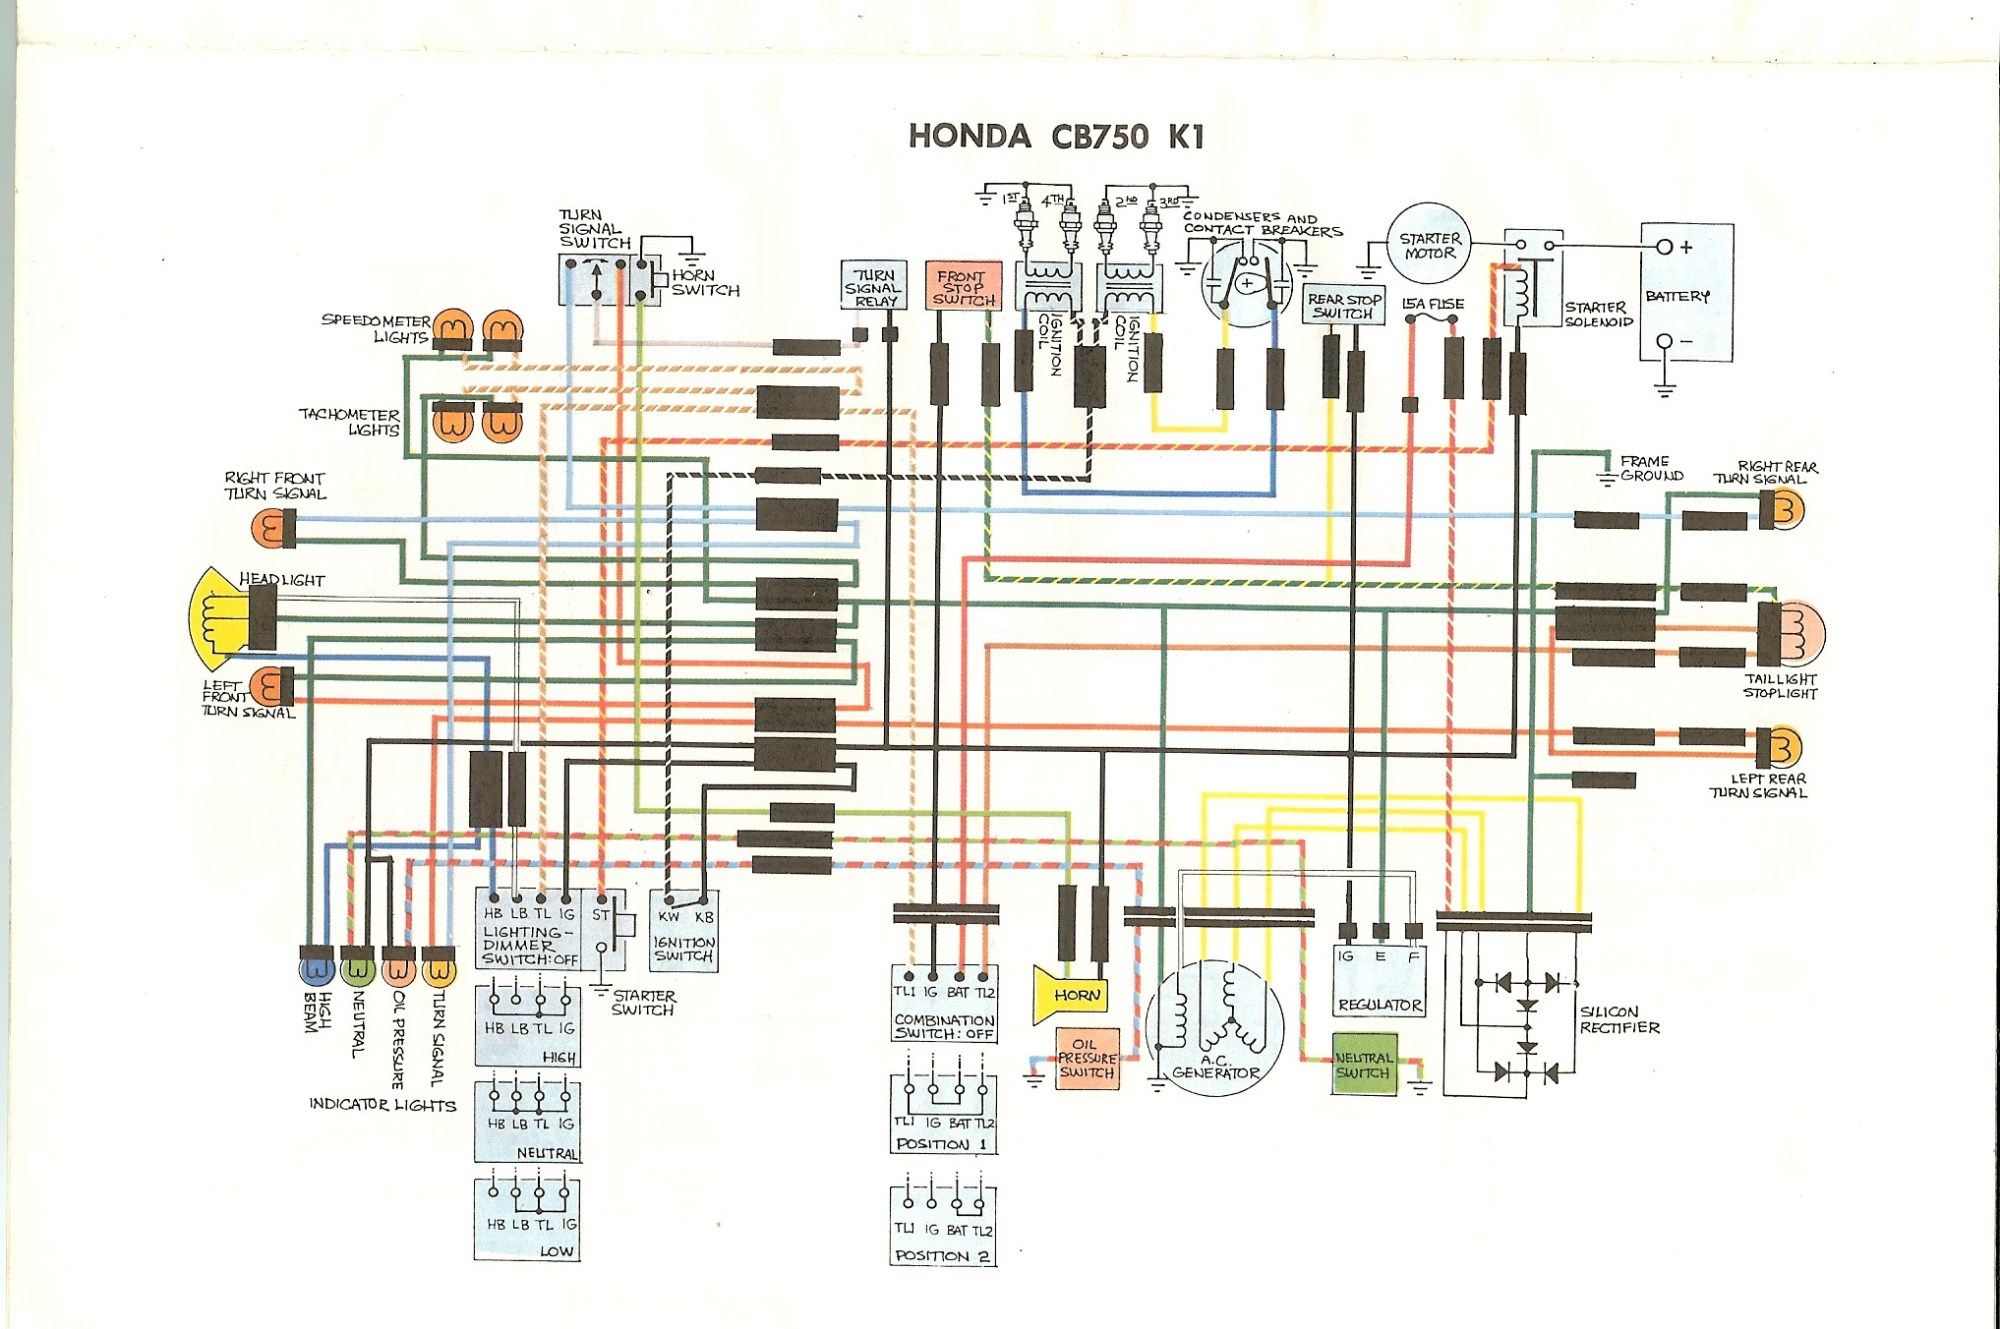 hight resolution of cb750 wiring diagram k 5 blog wiring diagram cb450 k5 wiring diagram cb750k cb750 wiring diagram